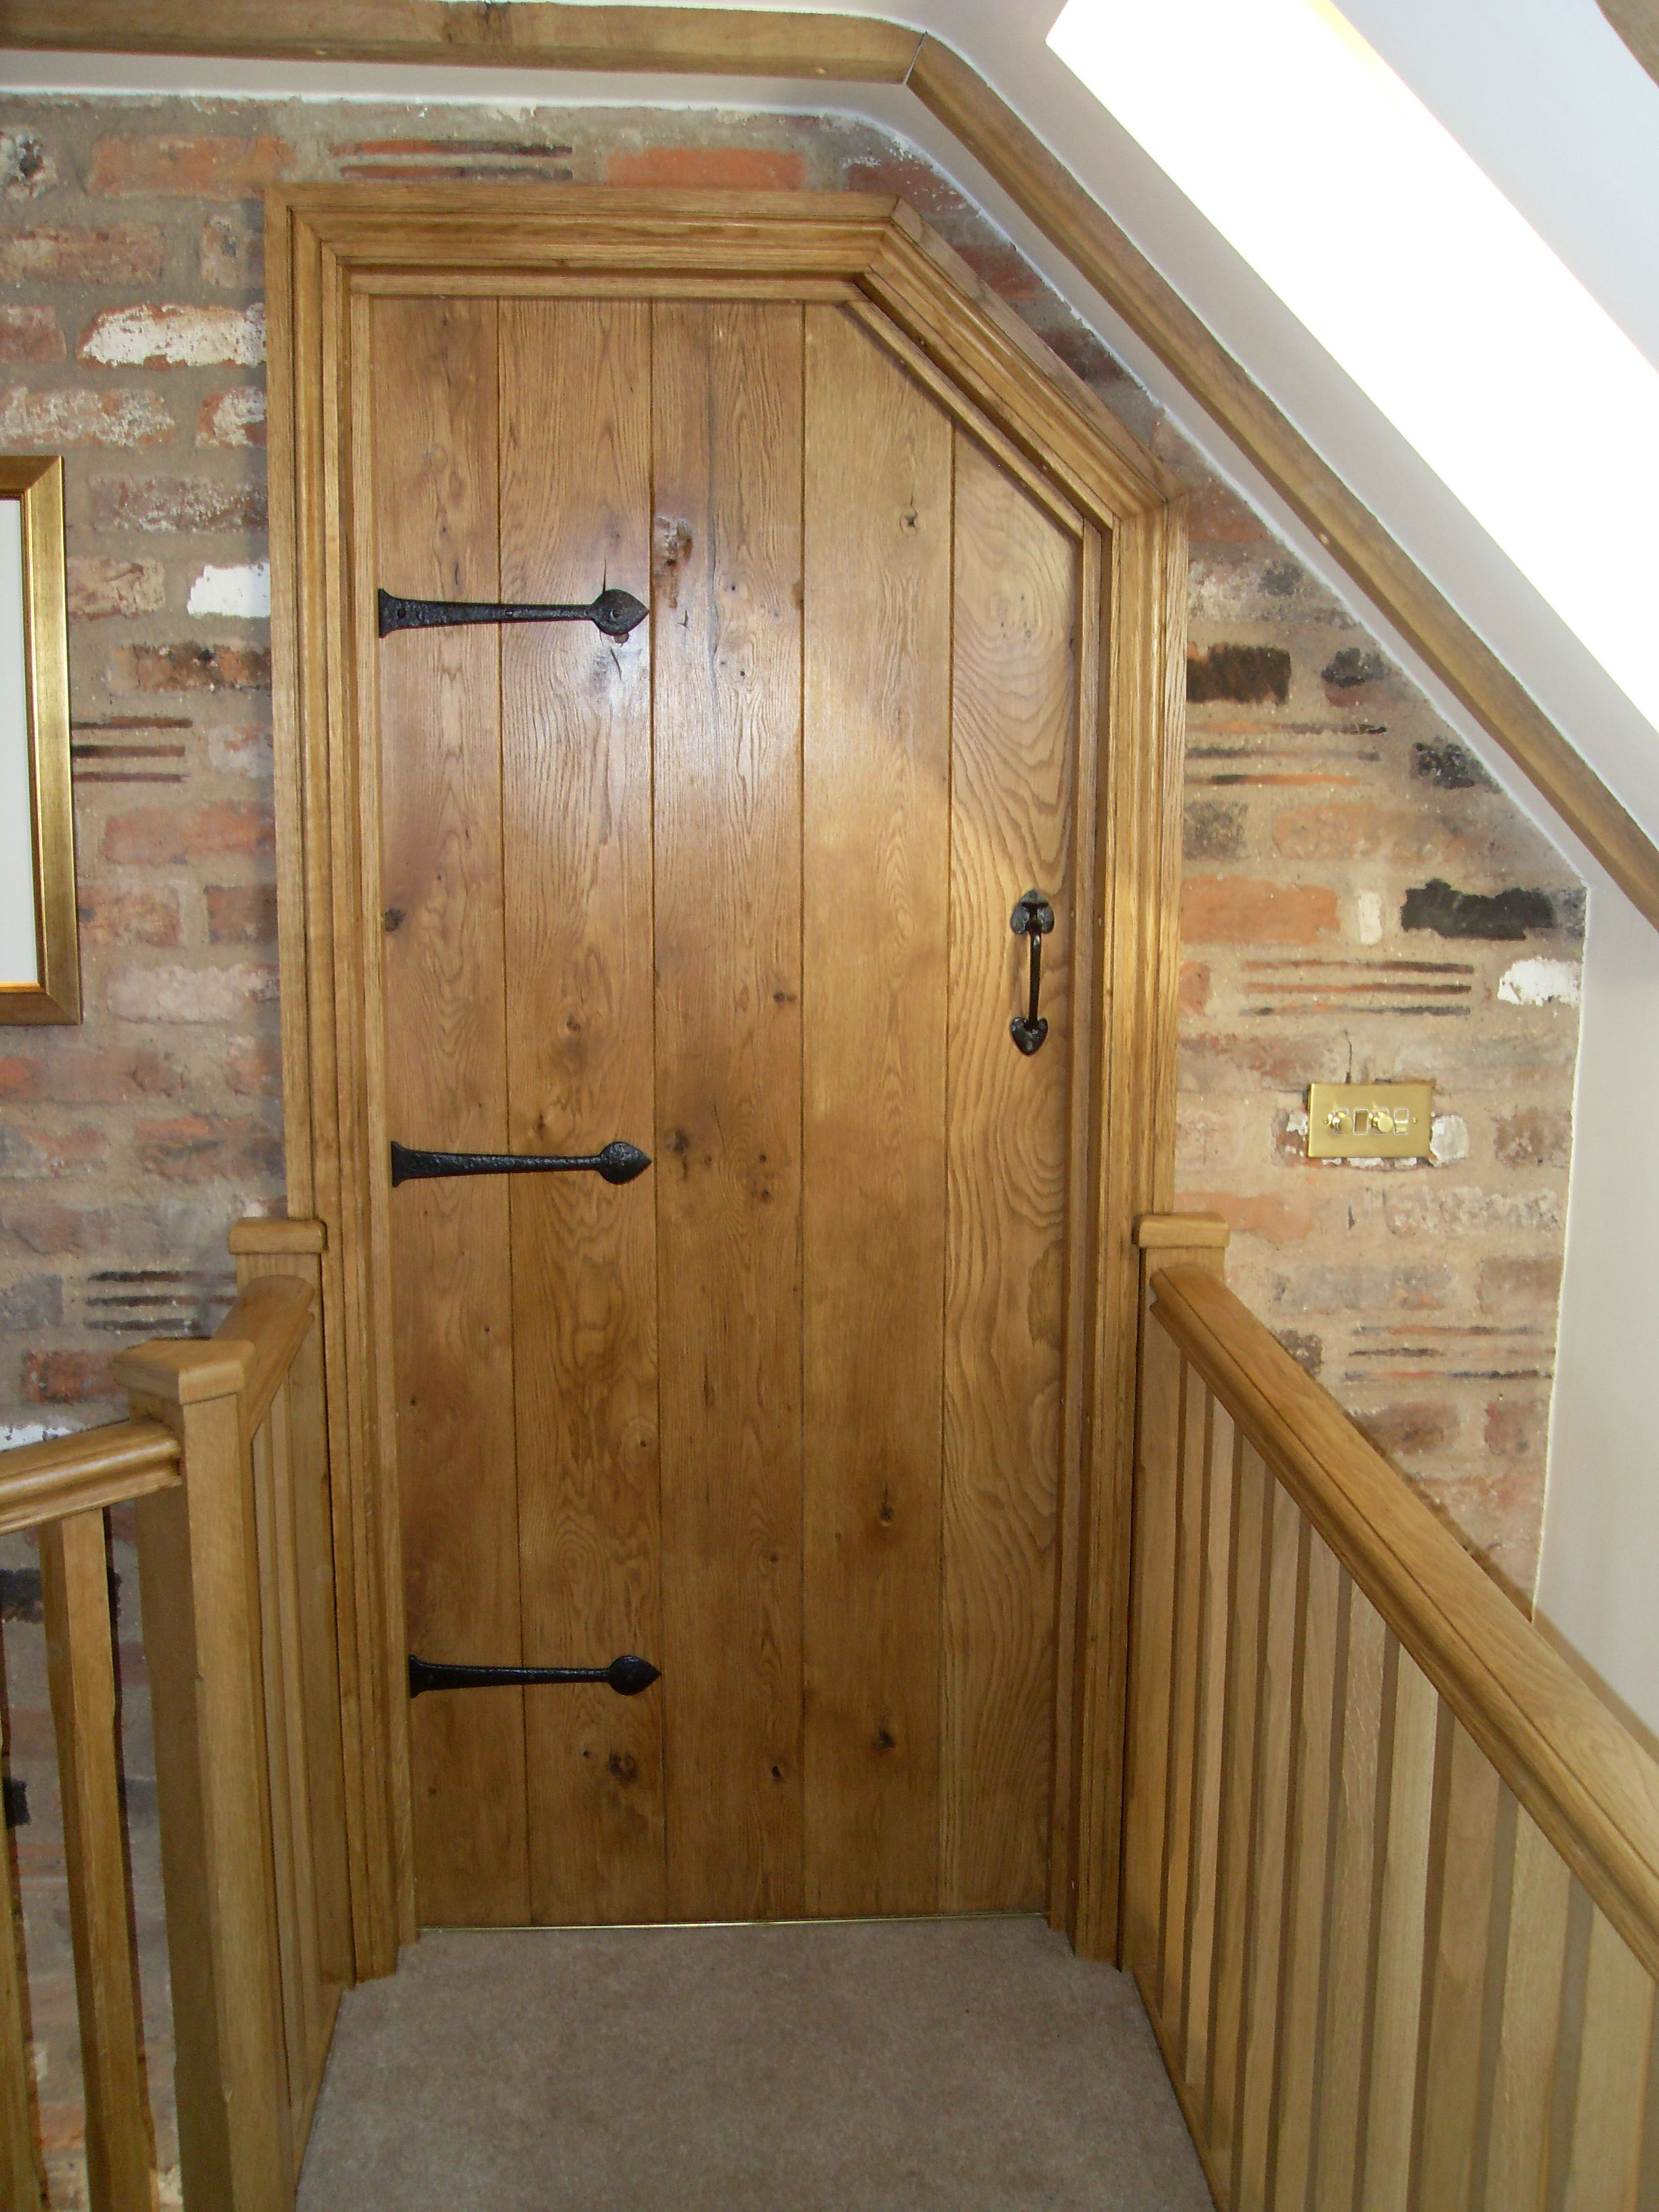 Ledge and brace oak doors - Made To Measure Bespoke Oak Internal Door Pre Finished And Handcrafted By Heritage With Matching